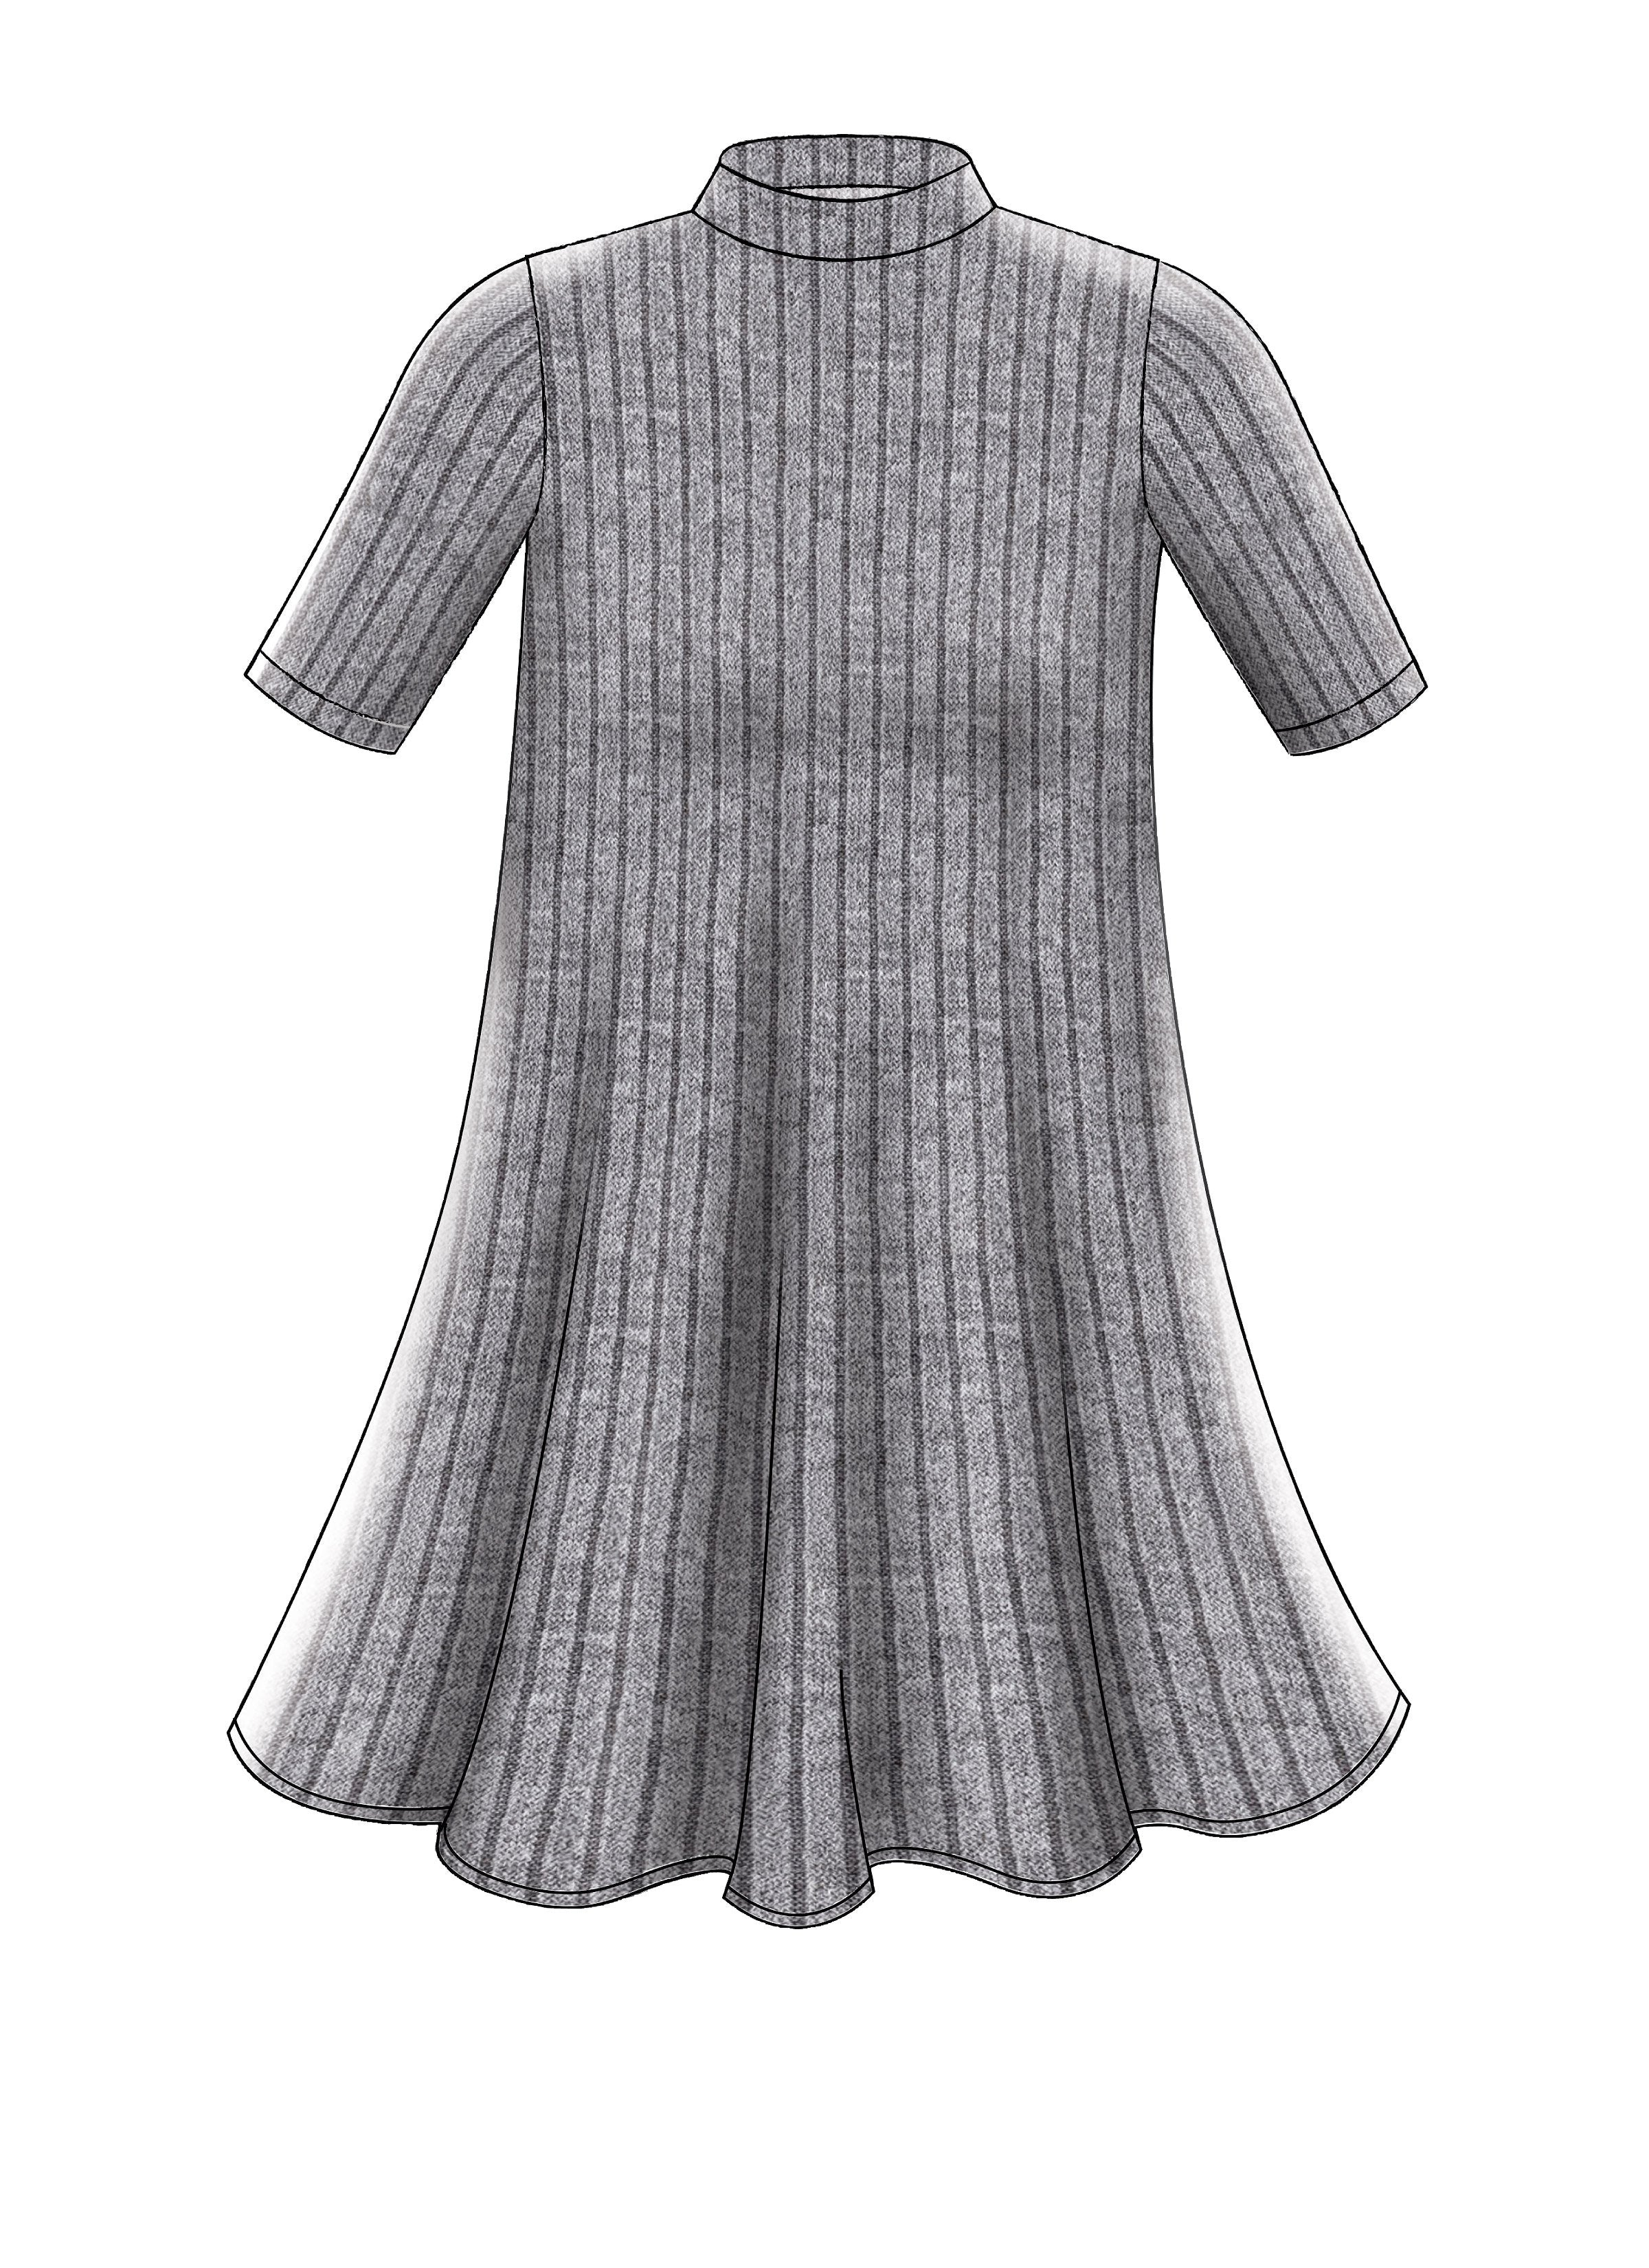 M7622 Knit Swing Dresses Pattern